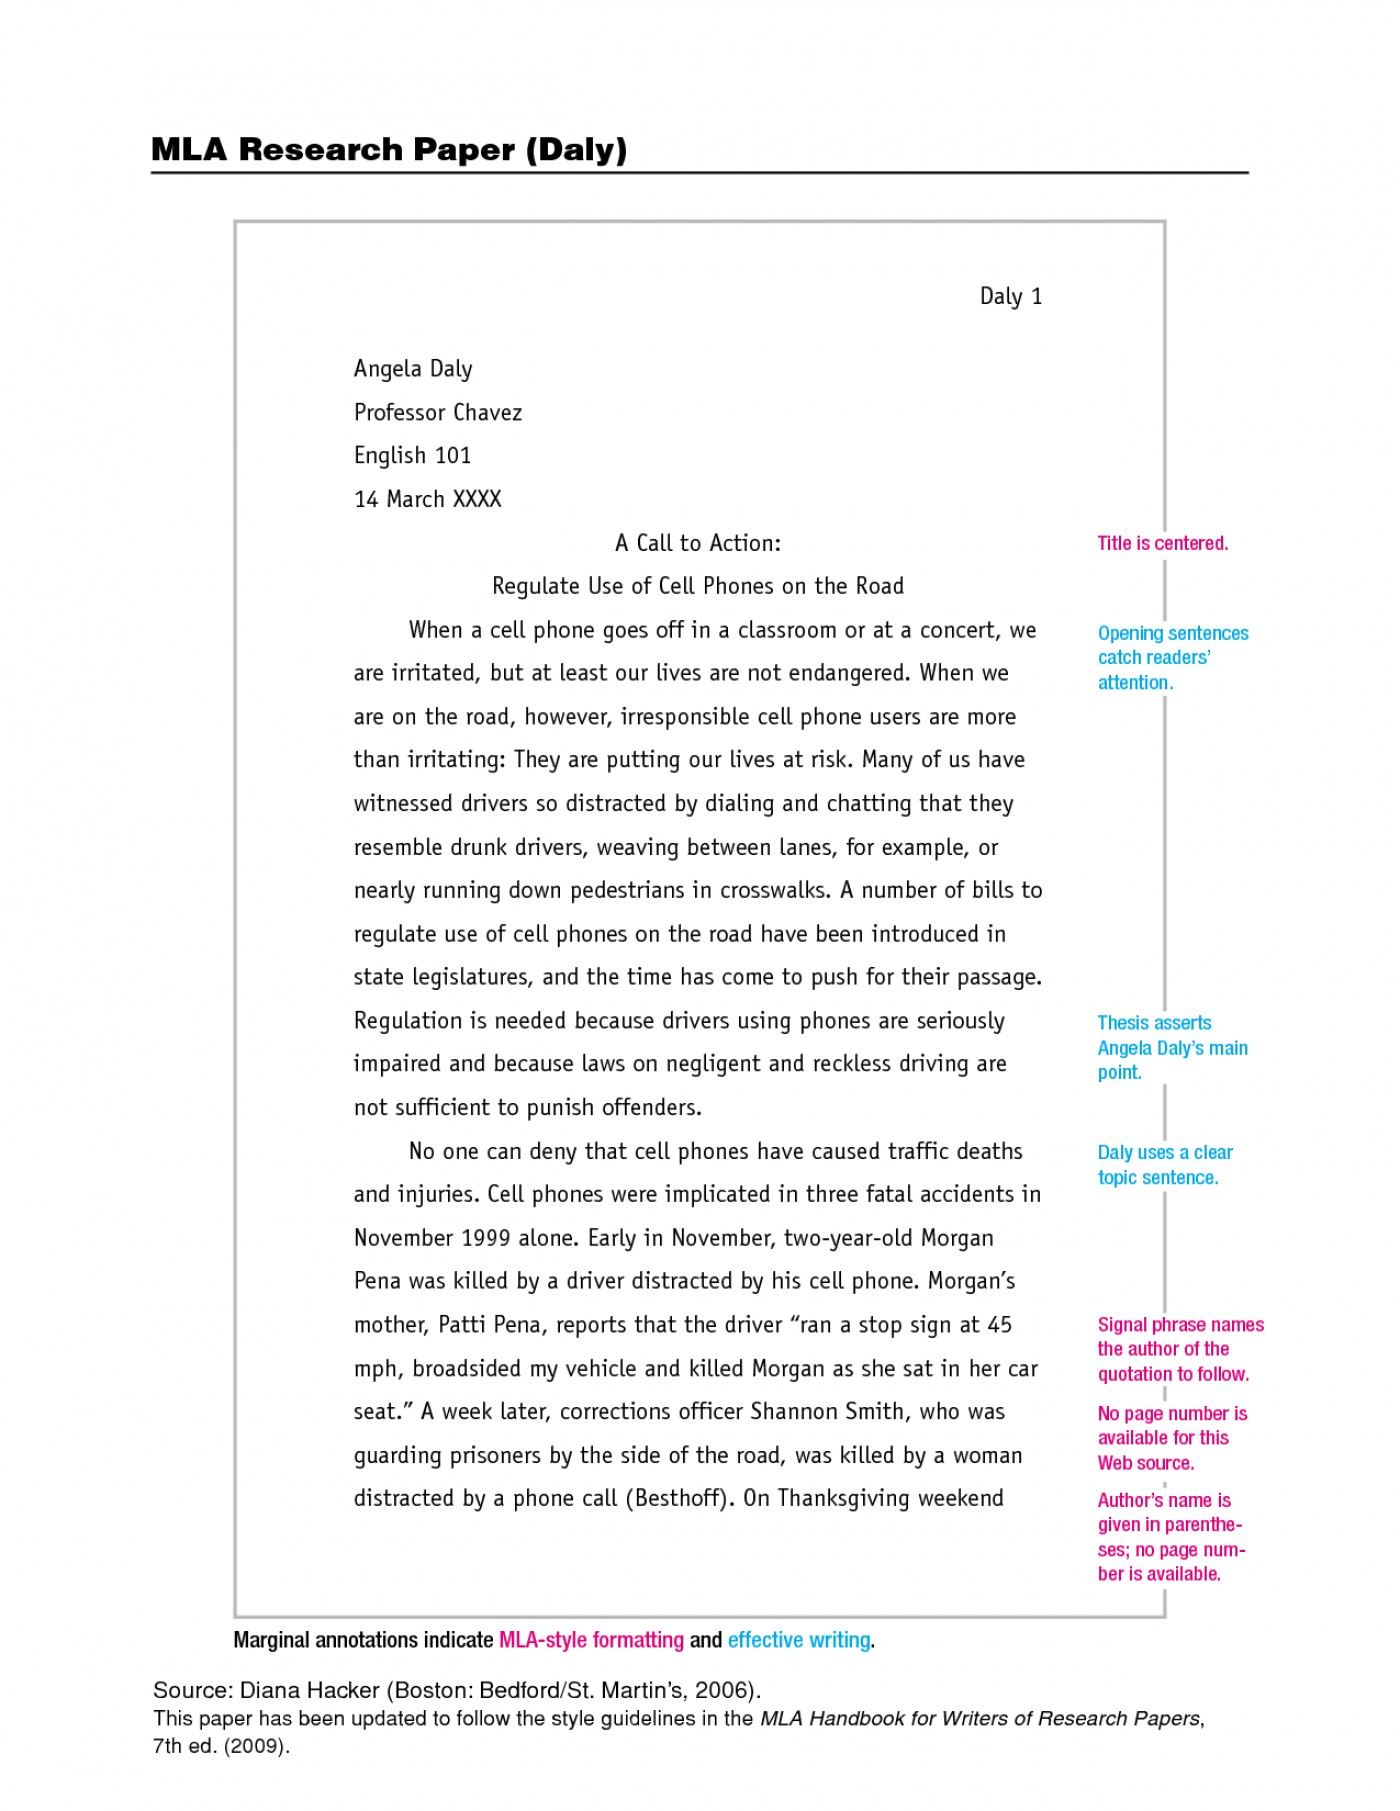 004 Mla Format Research Paper Example 477425 Style Sample Stupendous Papers Works Cited College Writing 1400